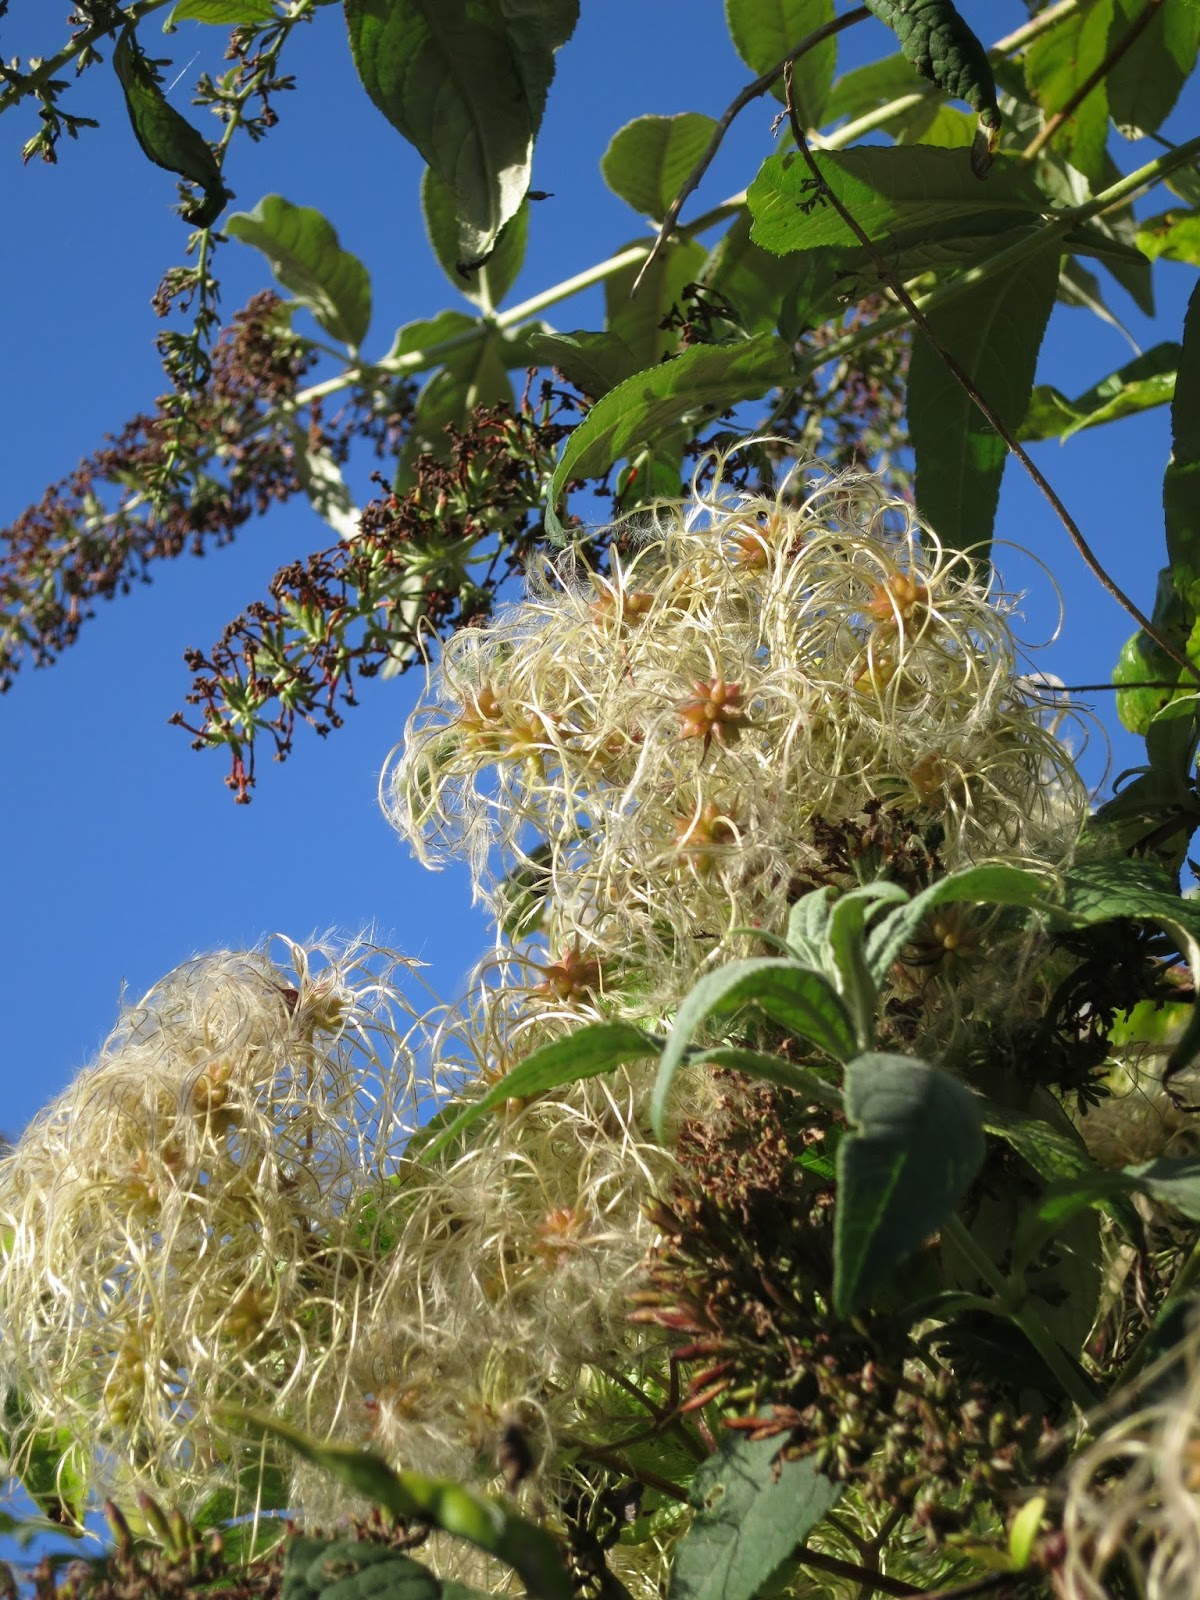 Old Man's Beard and Buddleia at the end of summer